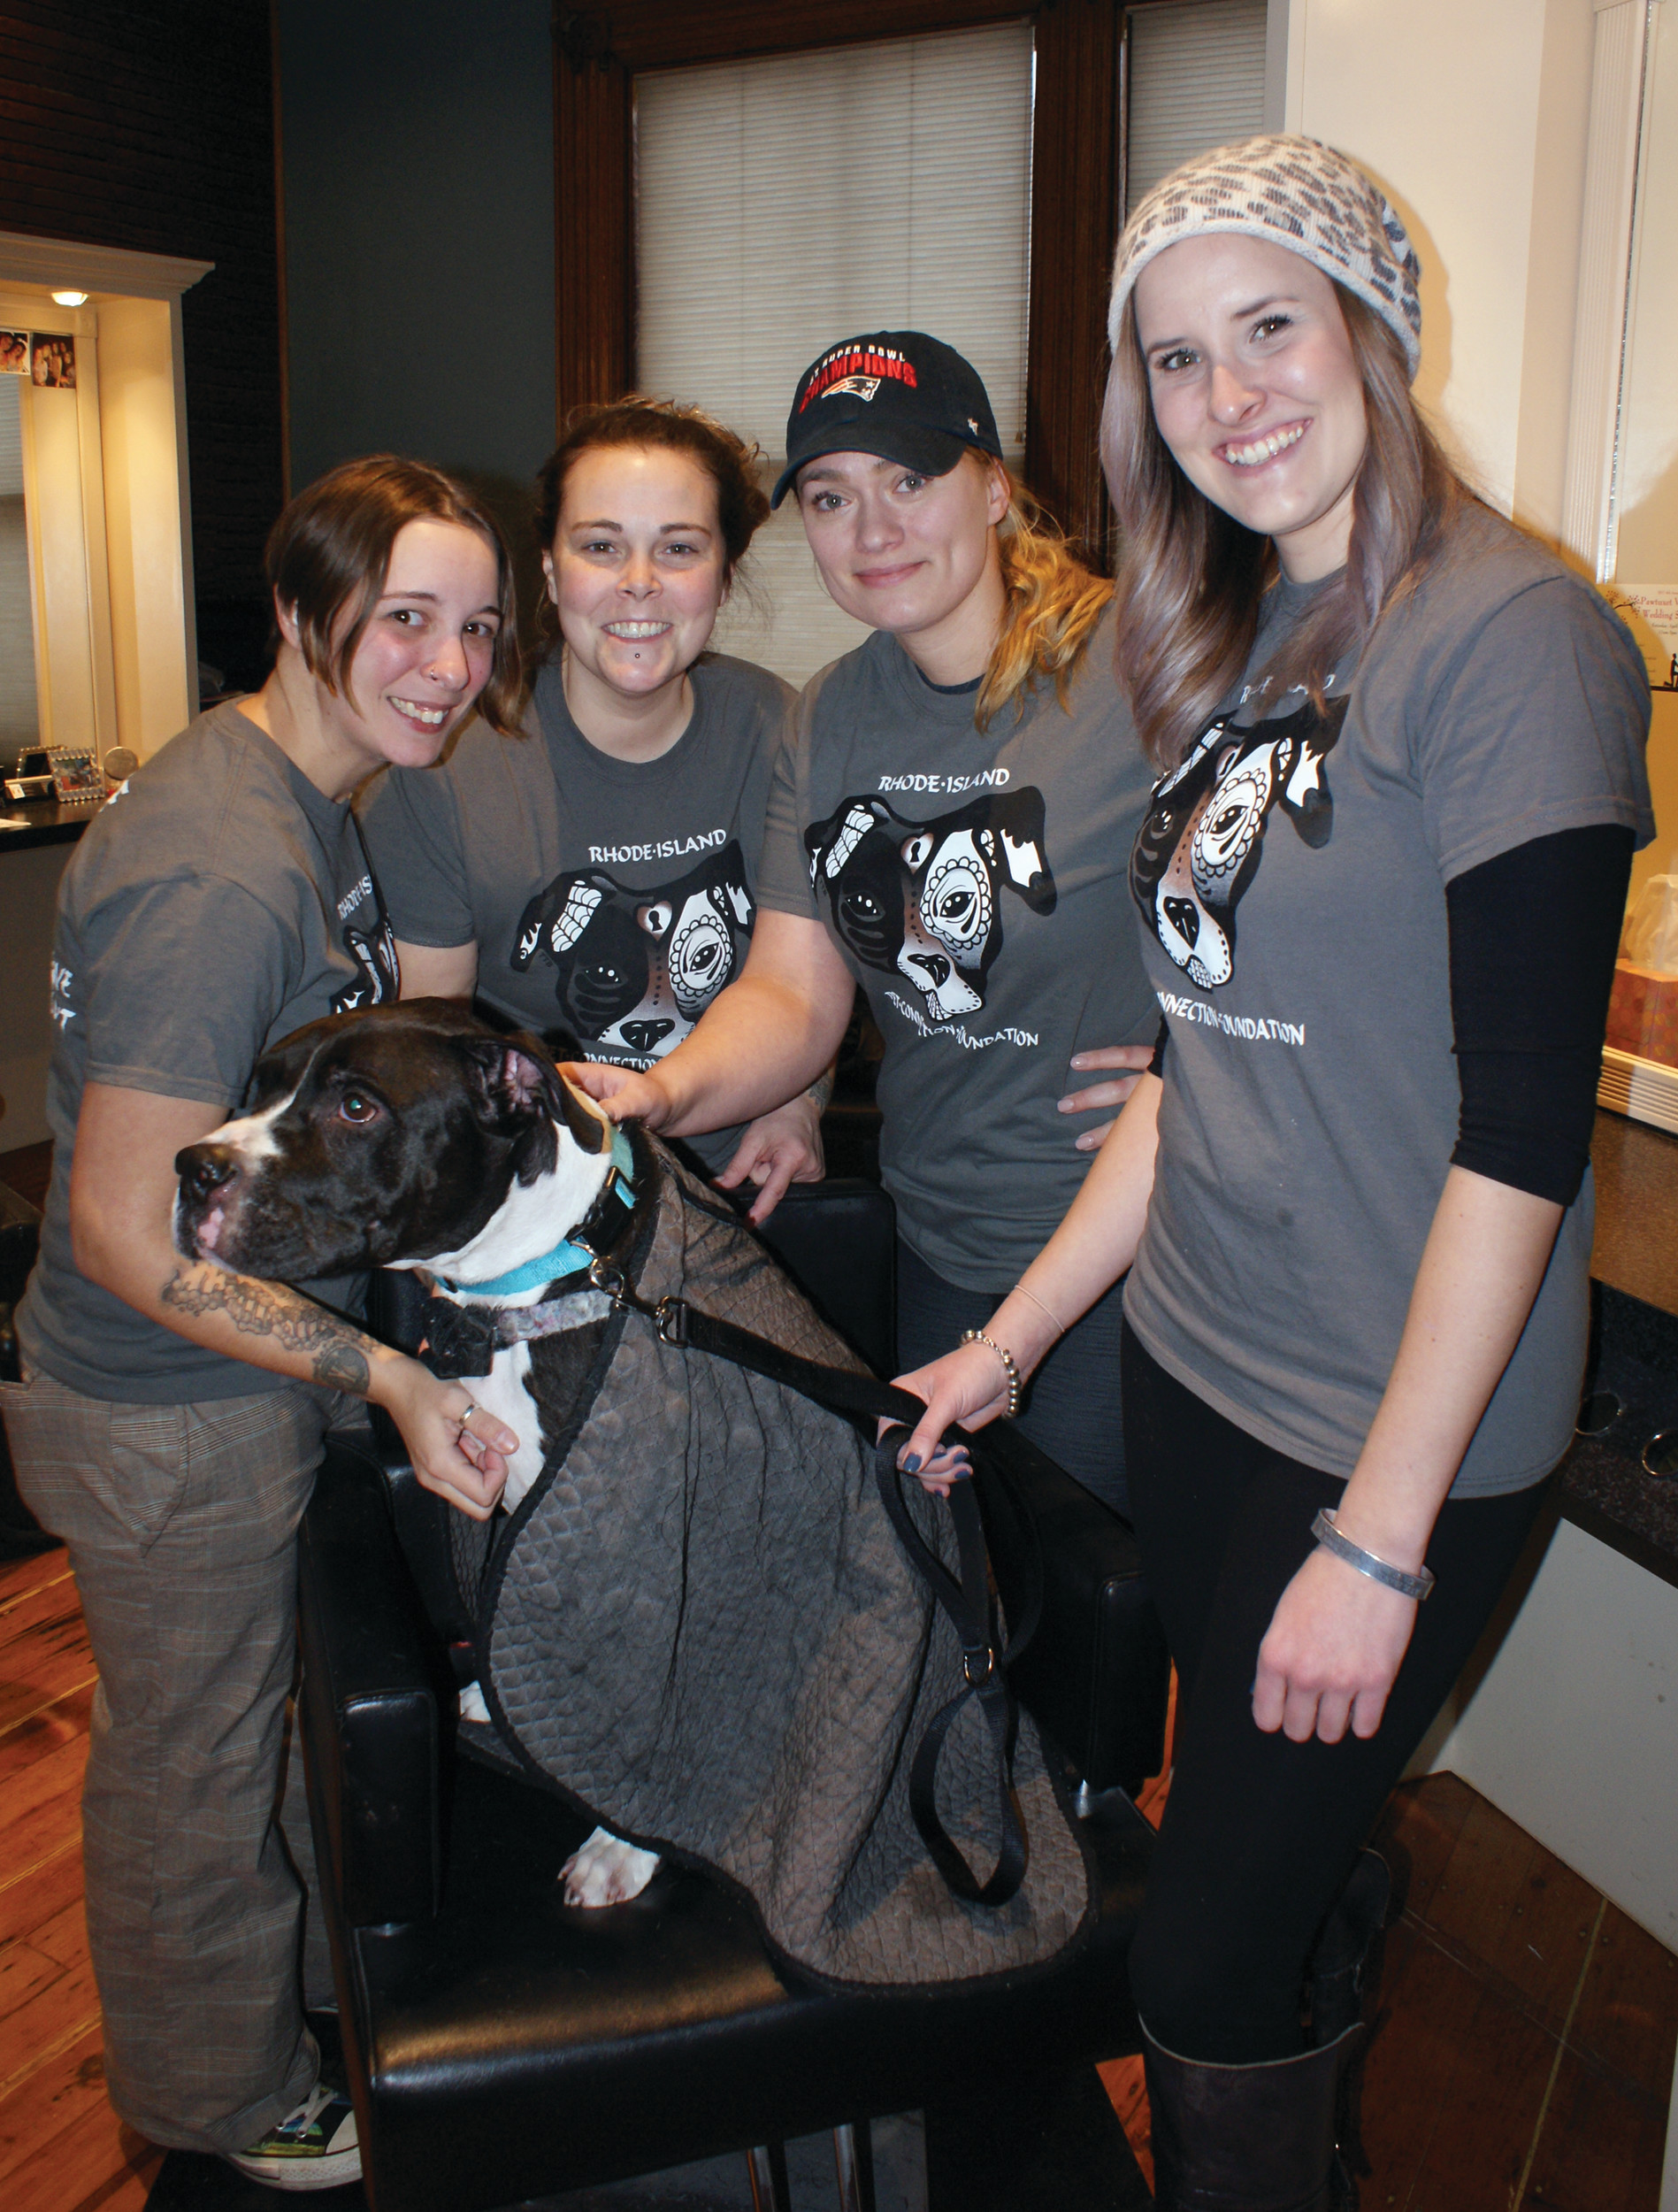 MEET SOLOMON: Stephanie May, Tiasa Loignon, Annette Folco and Ashley Dietrick are pictured with 8-9-year-old Solomon.